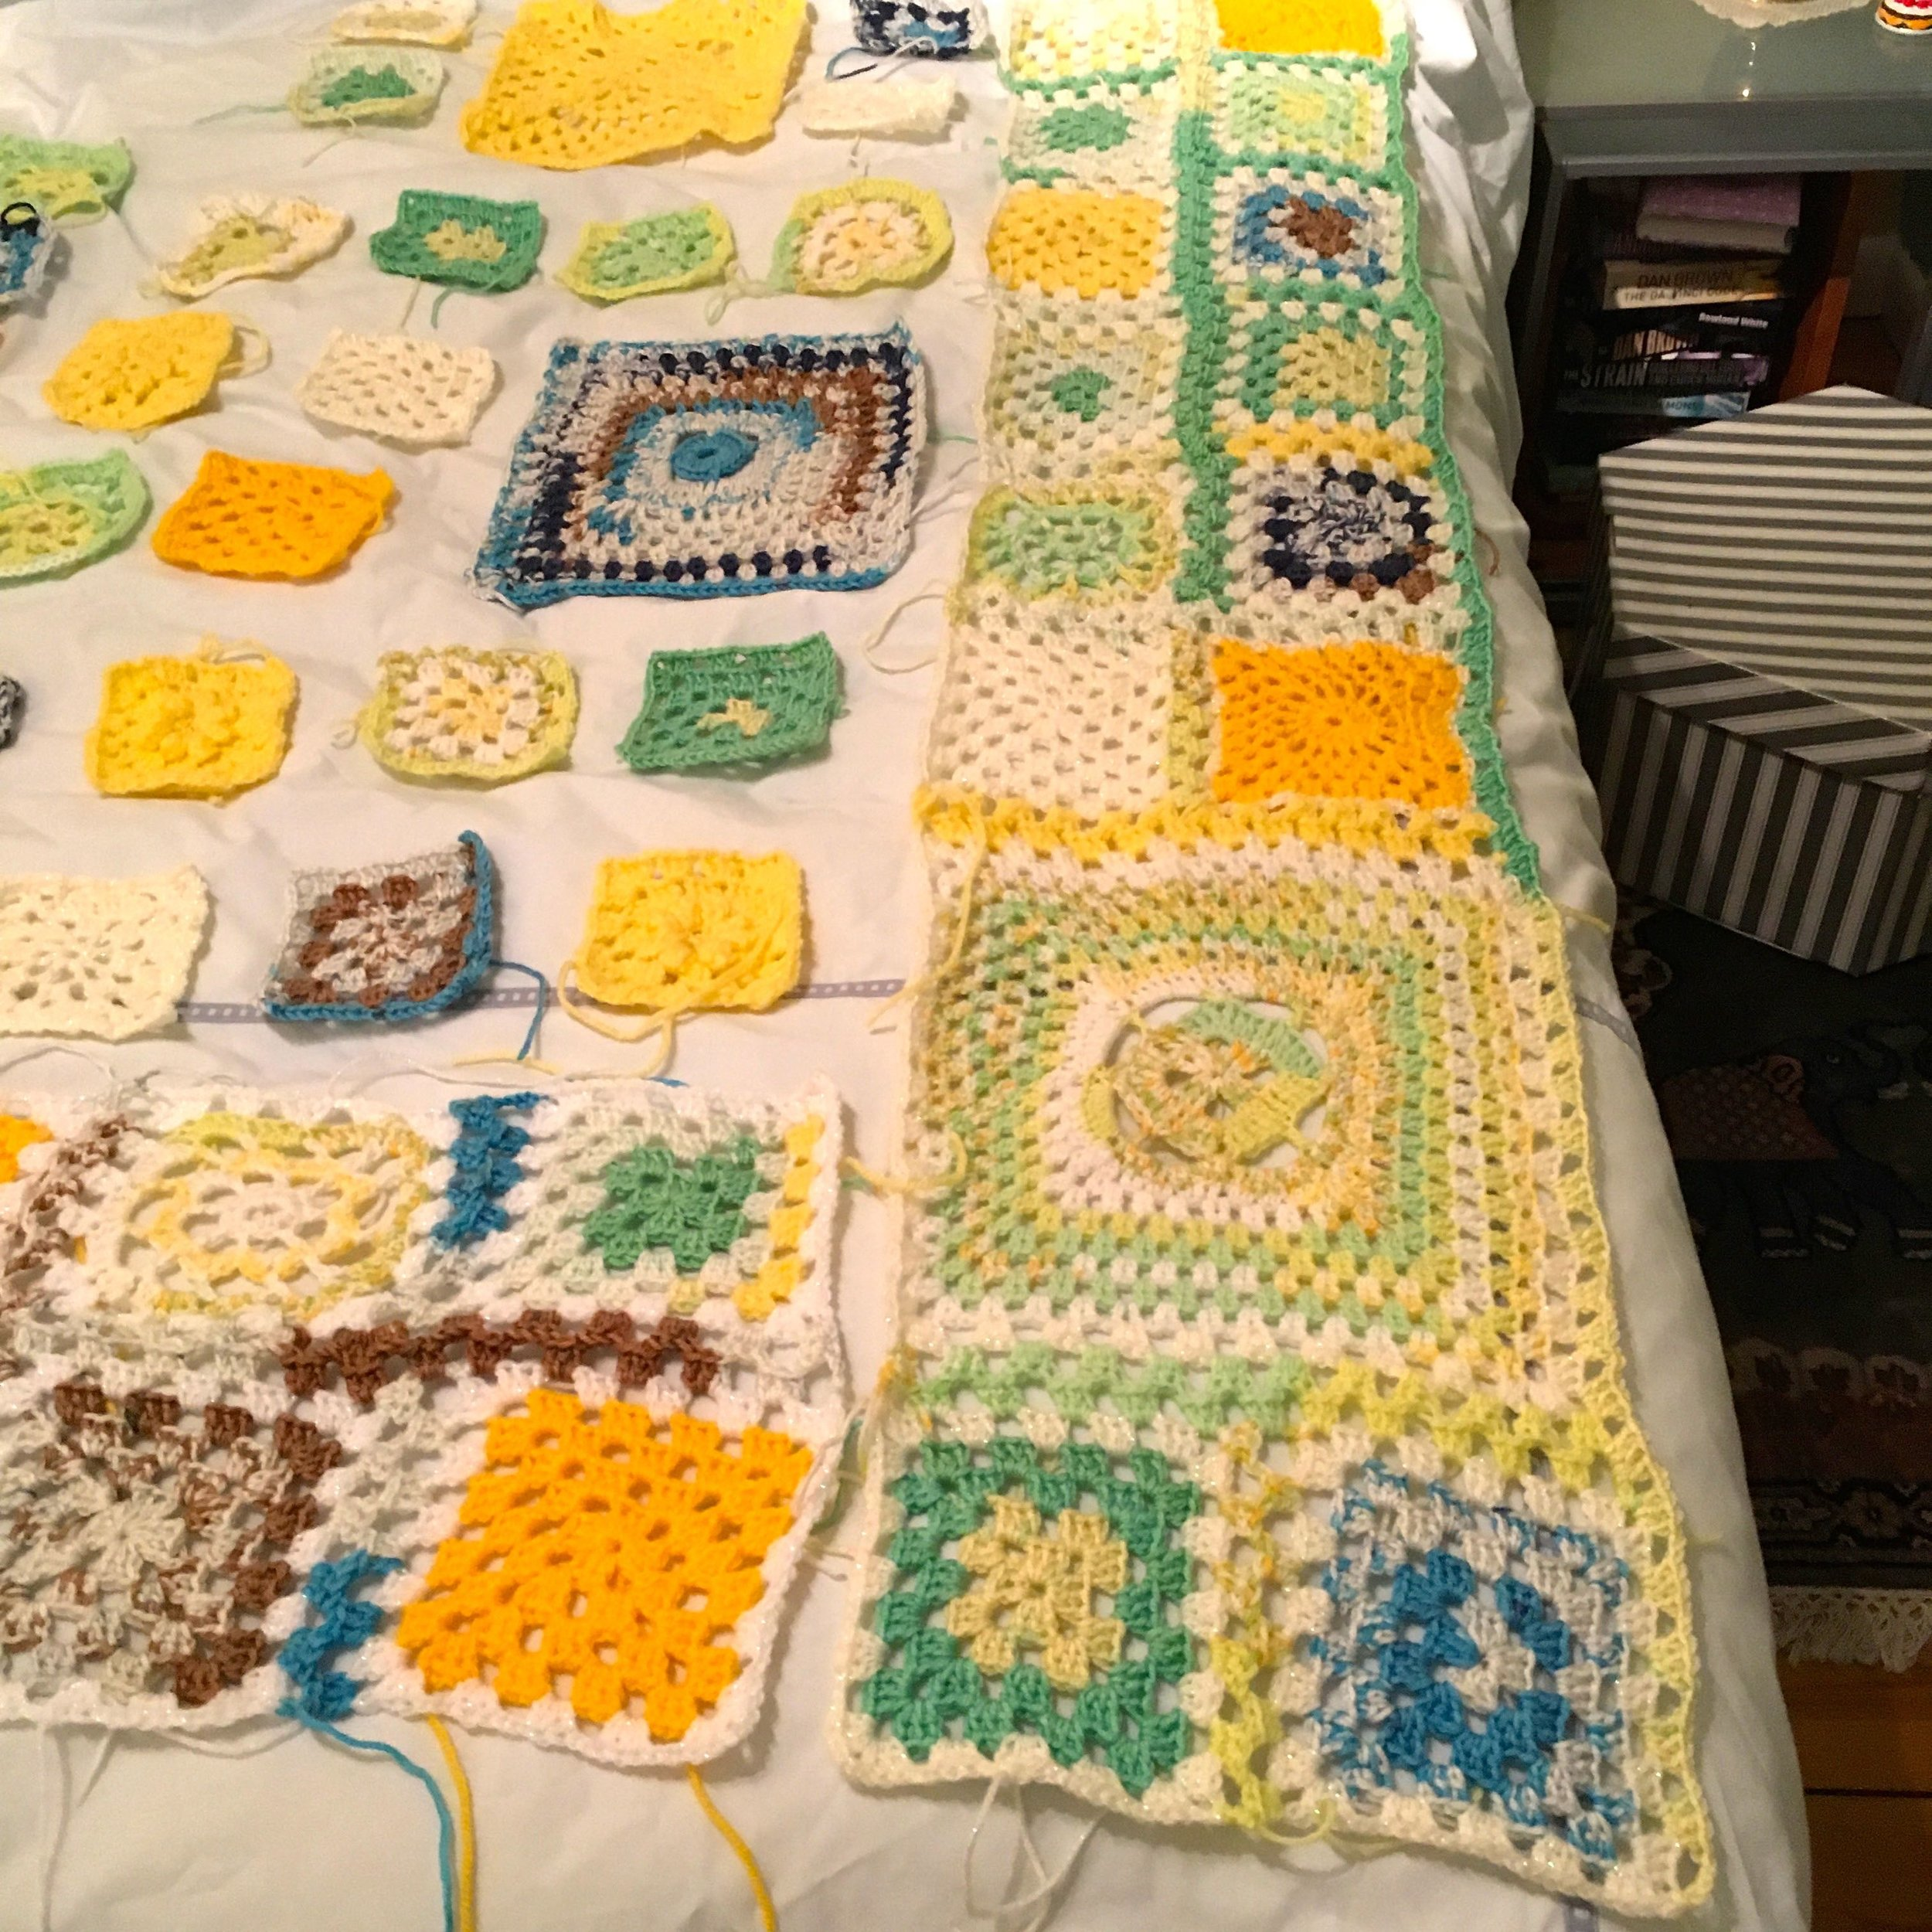 Progress on my Spring crochet blanket